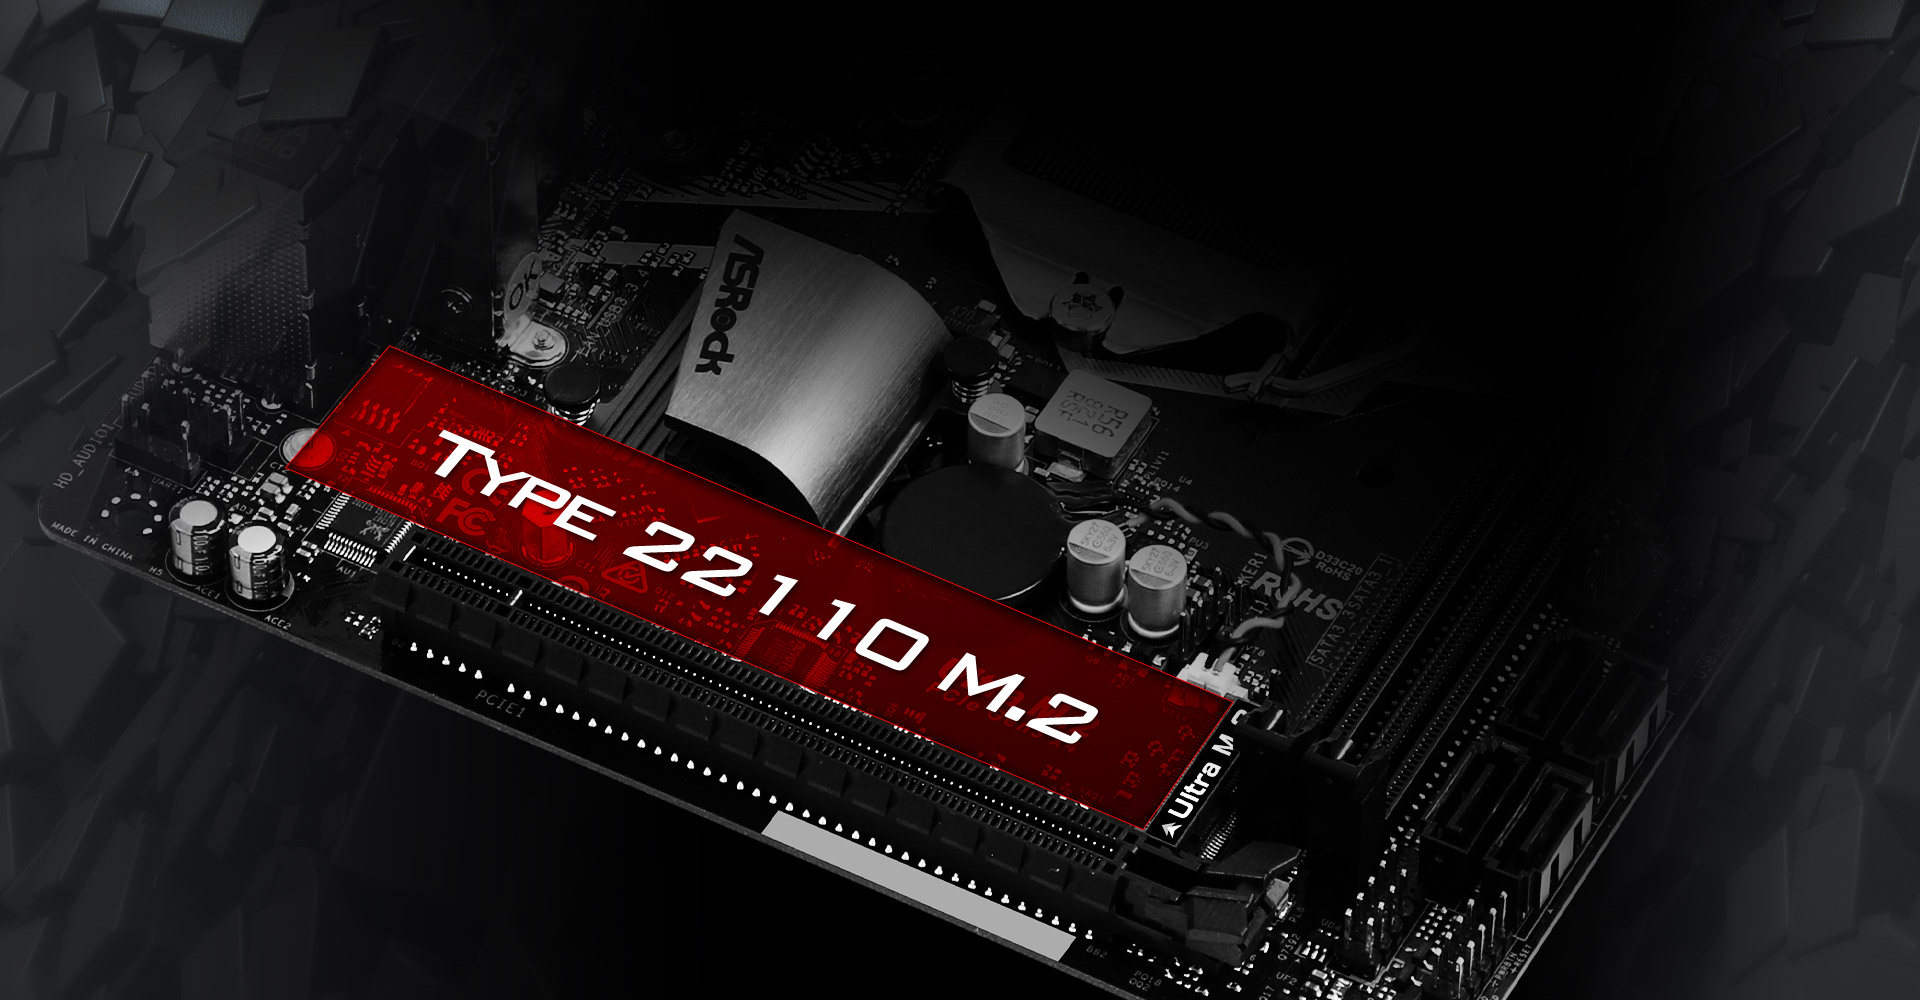 TYPE 22110 M.2 Slot on the Motherboard